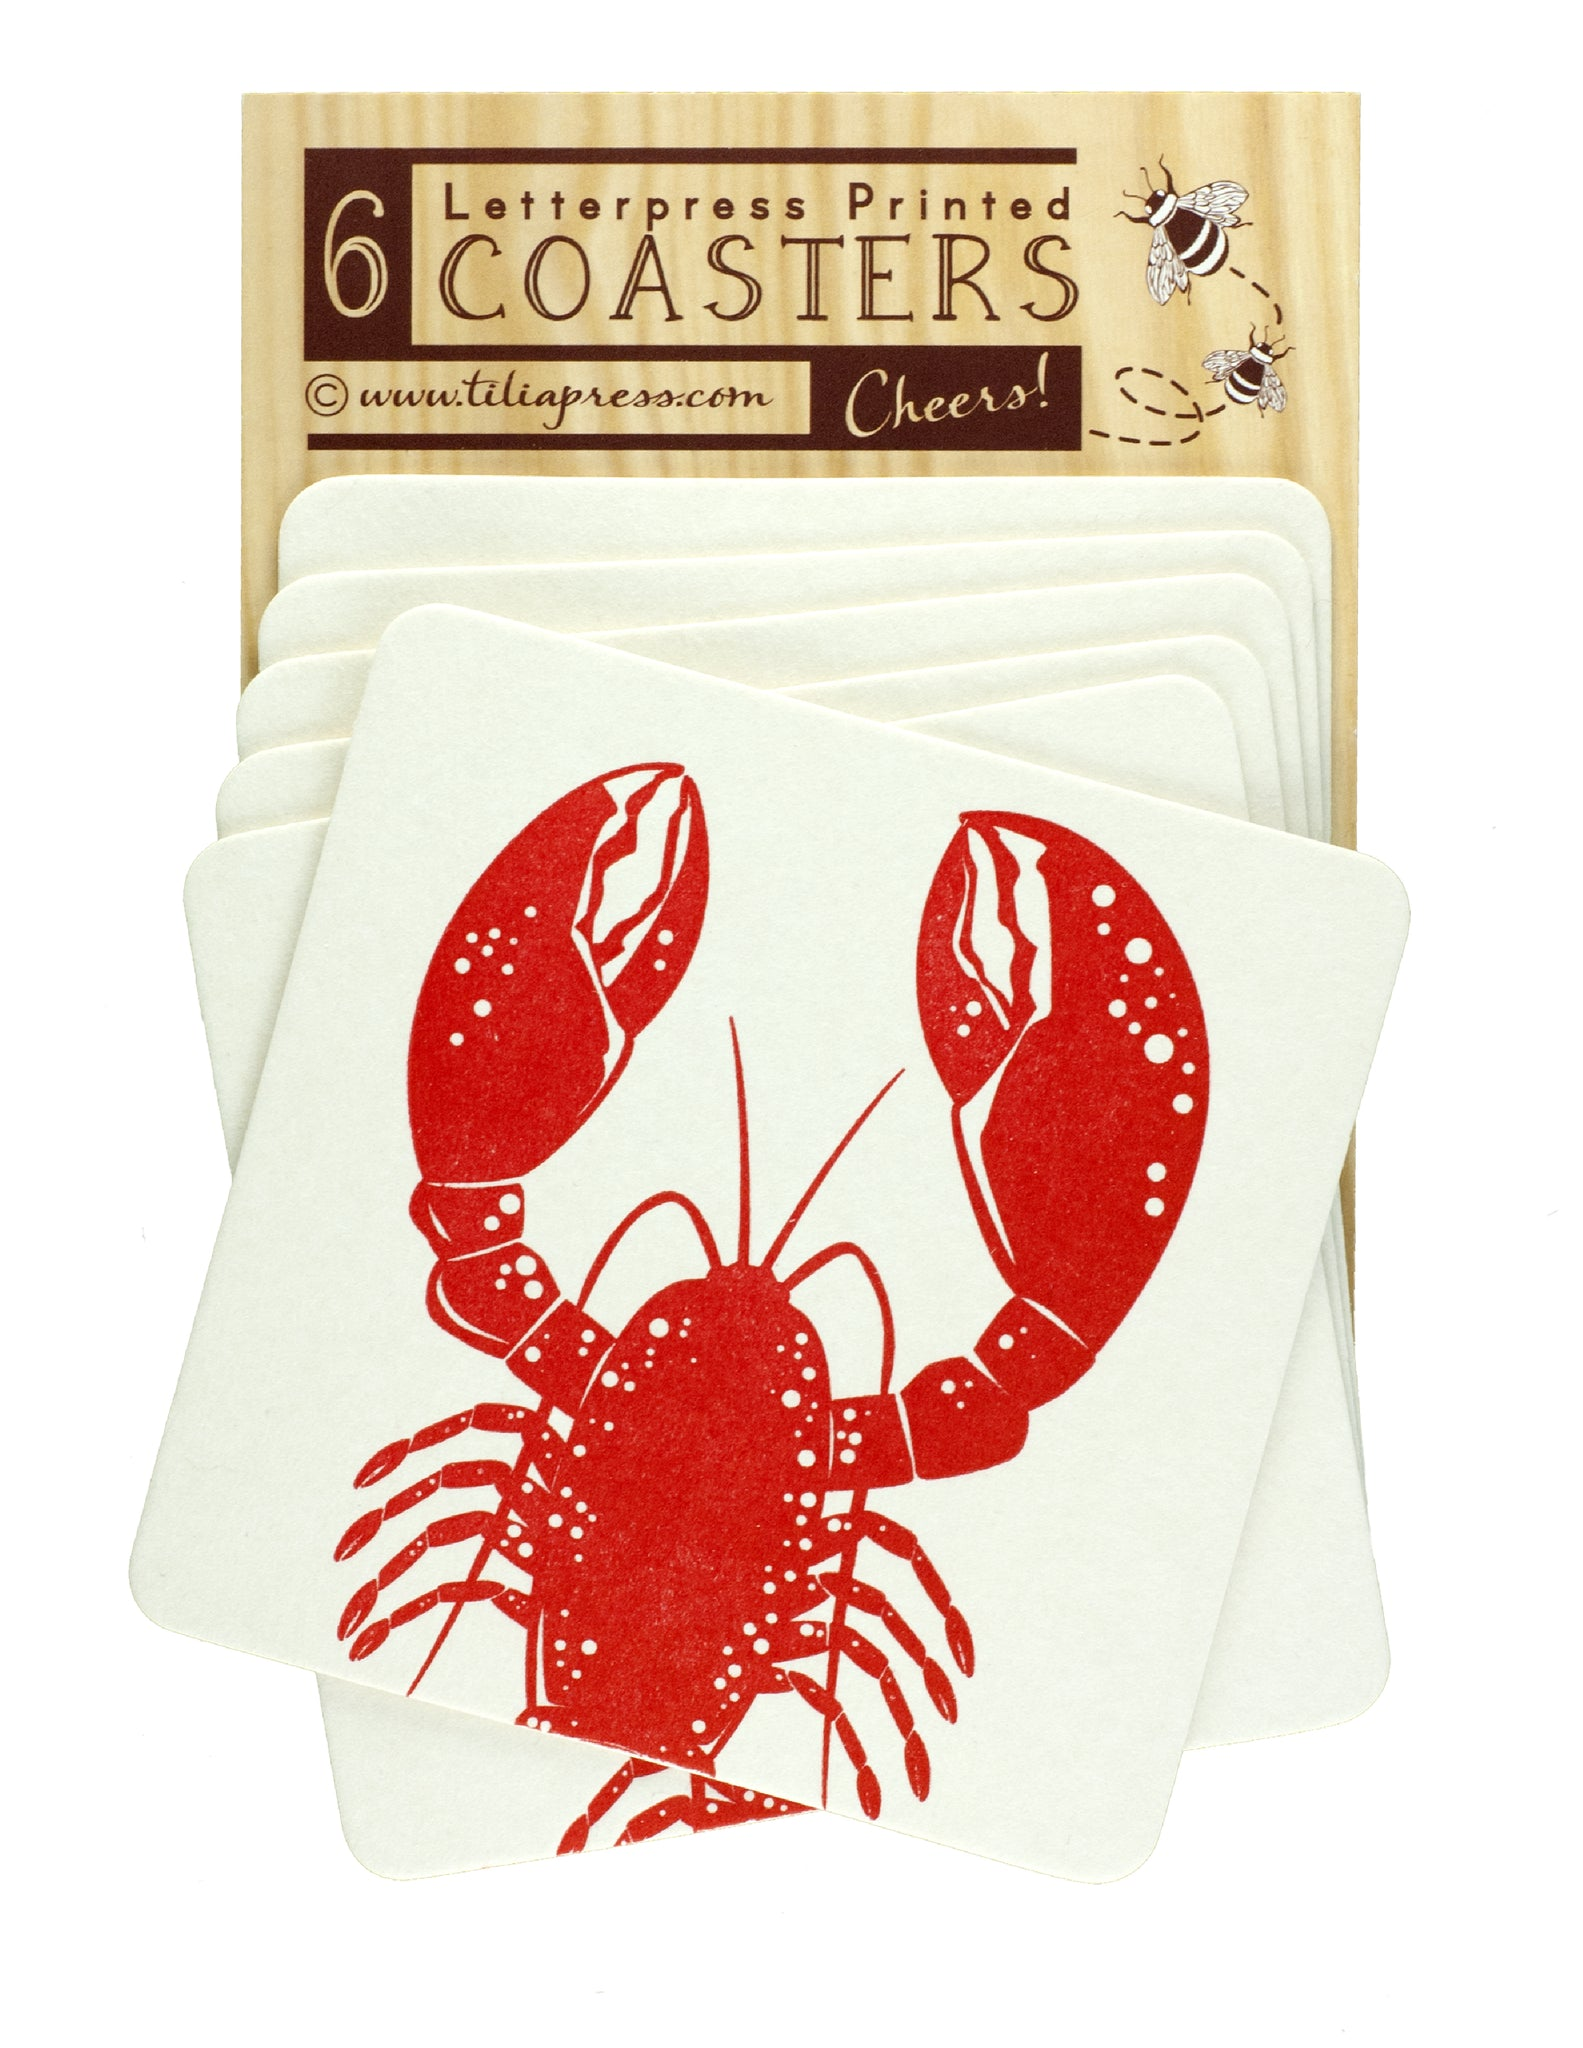 Red Lobster Letterpress Coasters - Beach party, lobster fest